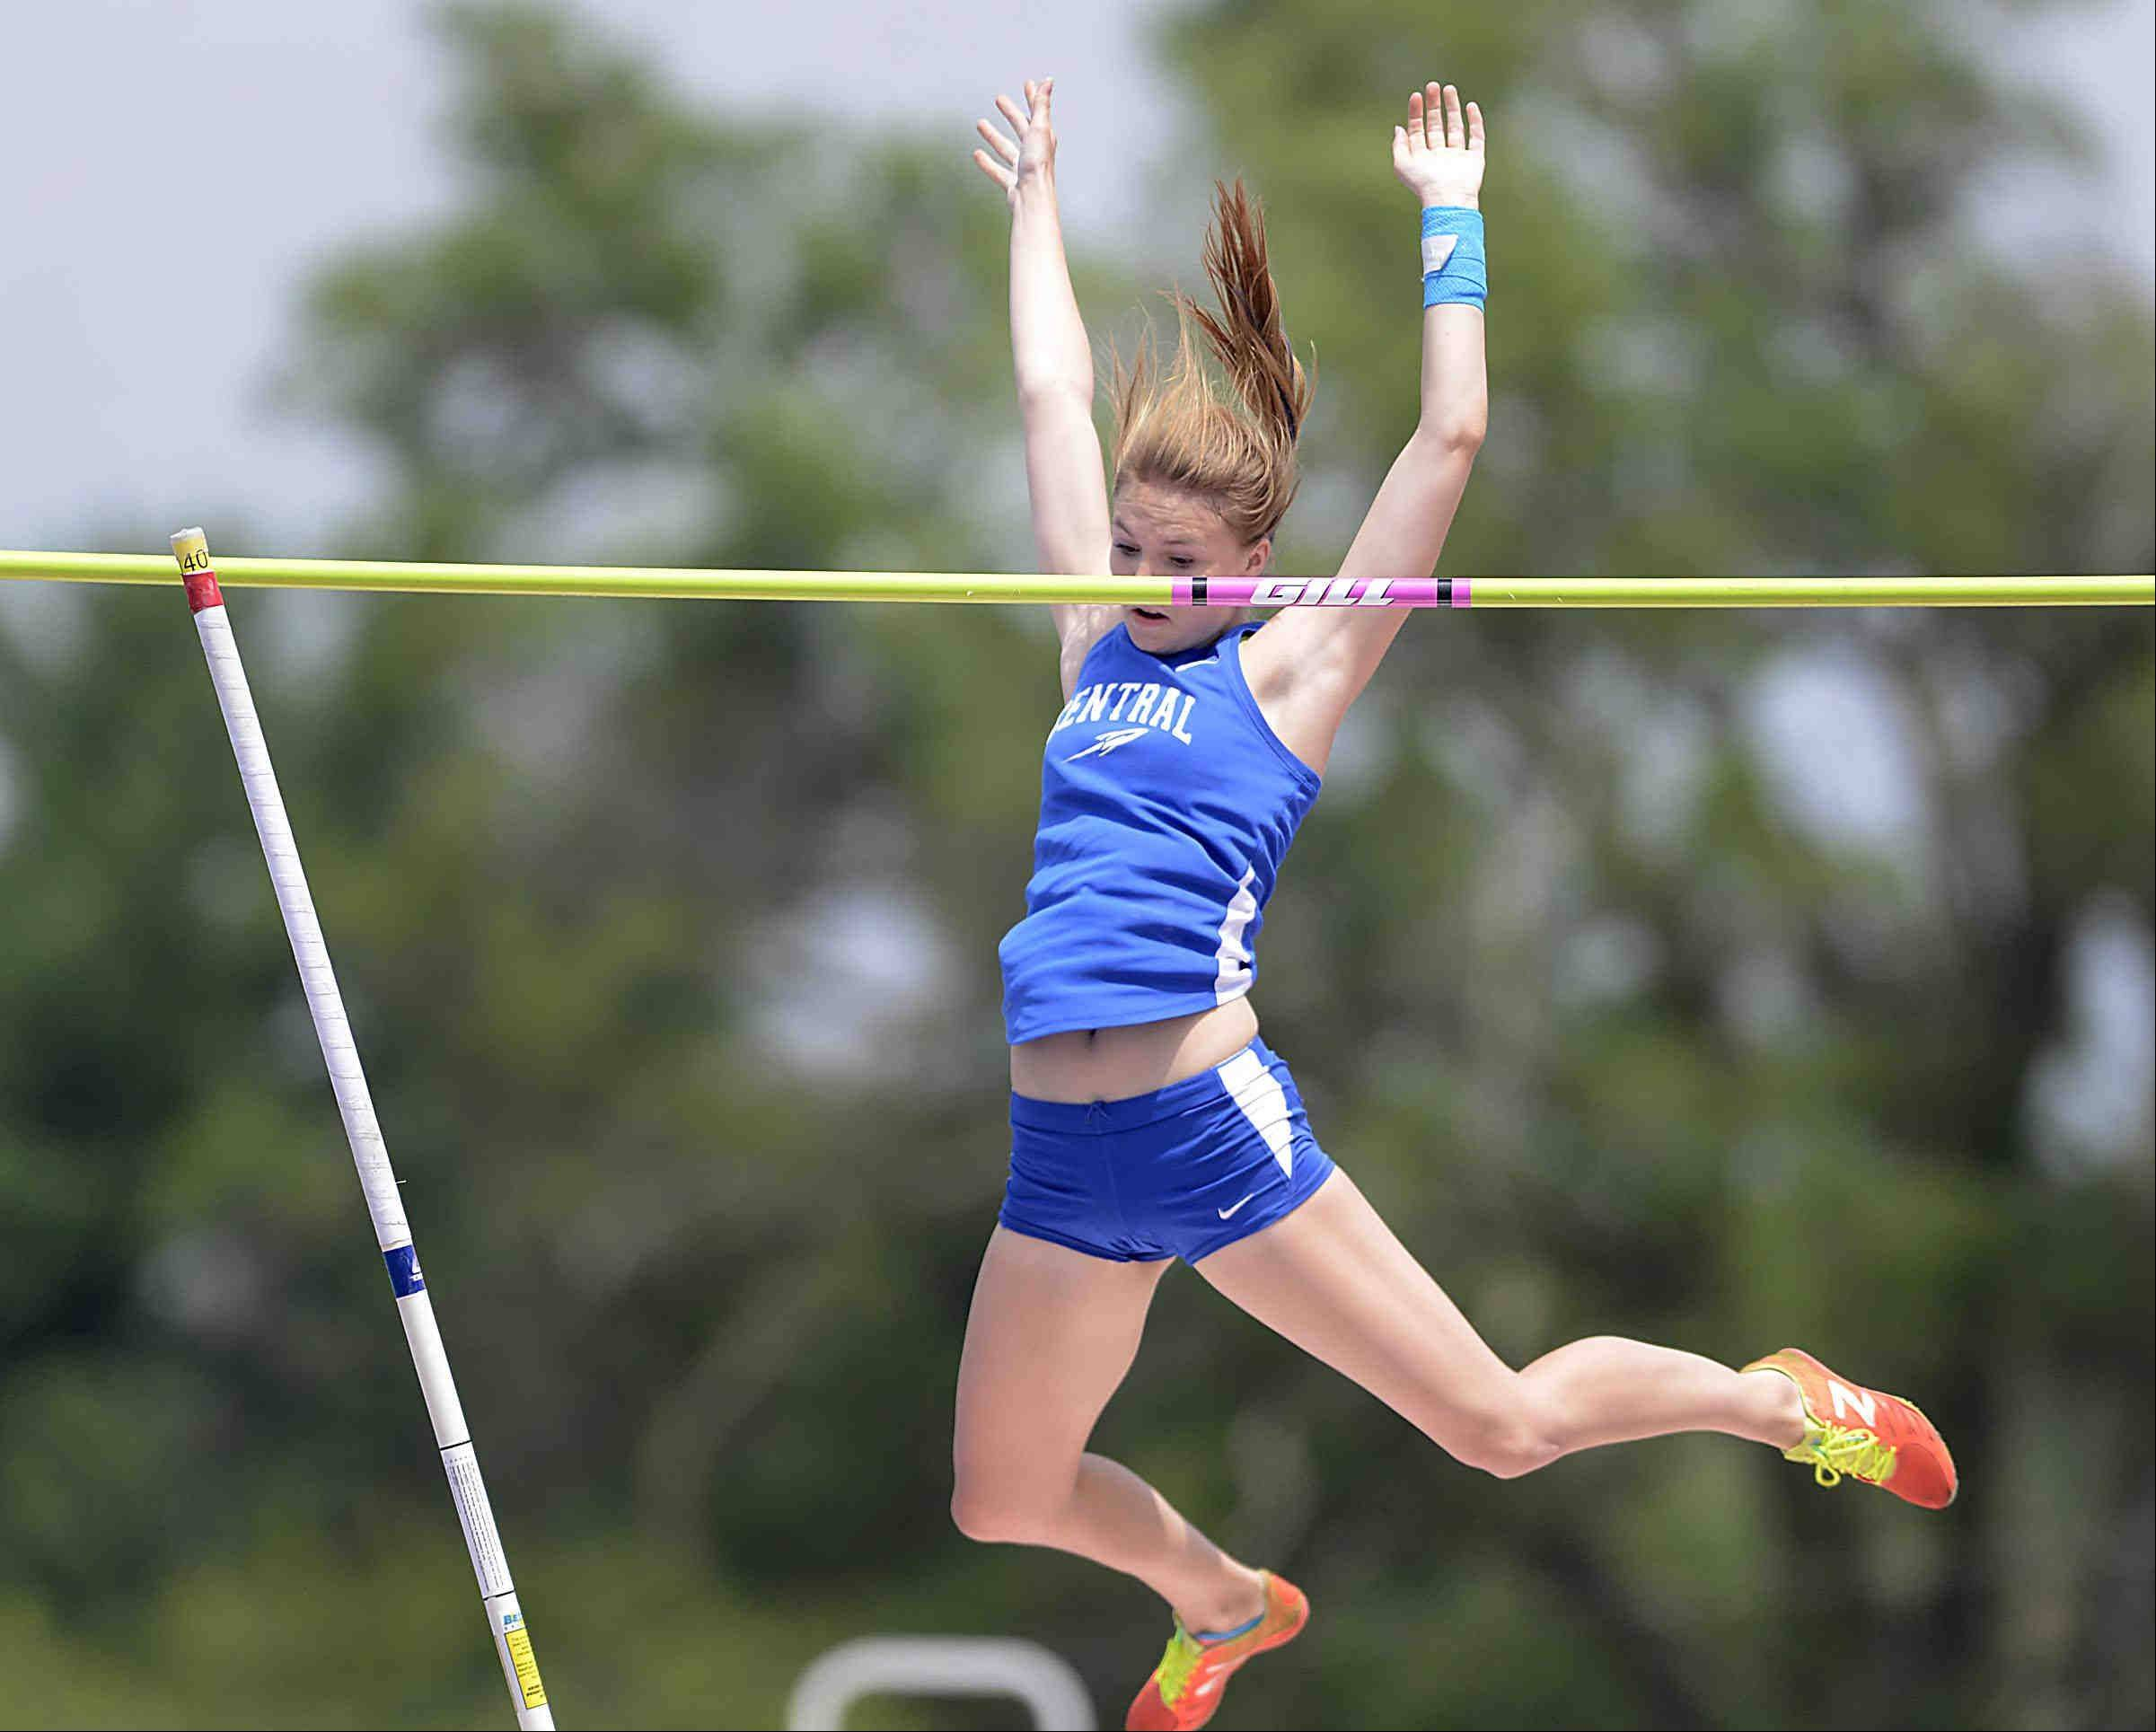 Burlington Central's Katie Trupp places second in the pole vault Saturday at the Class 2A girls state track and field finals at O'Brien Stadium at Eastern Illinois University in Charleston.